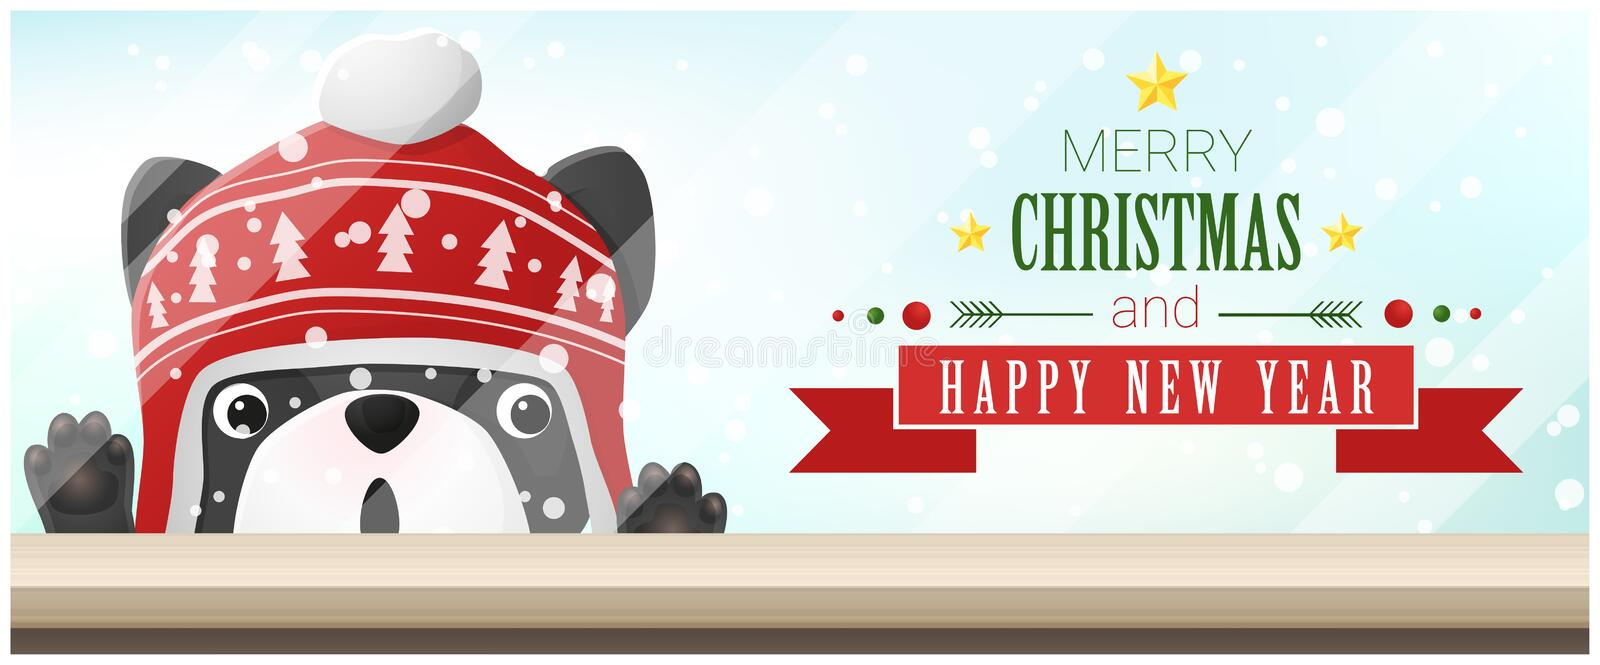 Merry Christmas and Happy New Year background with french bulldog looking at empty table top stock illustration